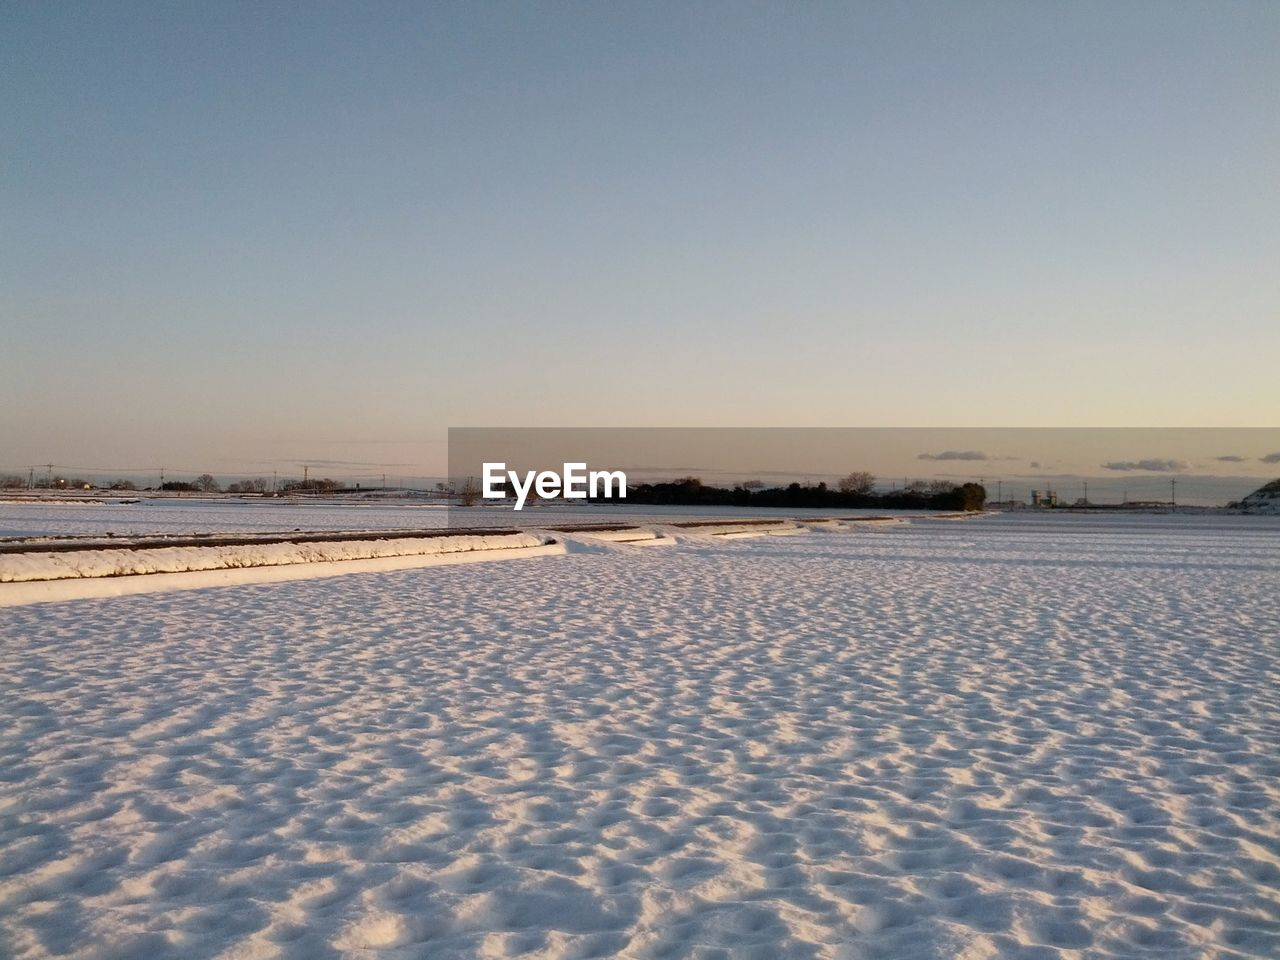 winter, nature, cold temperature, snow, tranquility, outdoors, beauty in nature, tranquil scene, no people, clear sky, copy space, sand, scenics, day, water, salt - mineral, landscape, sky, salt basin